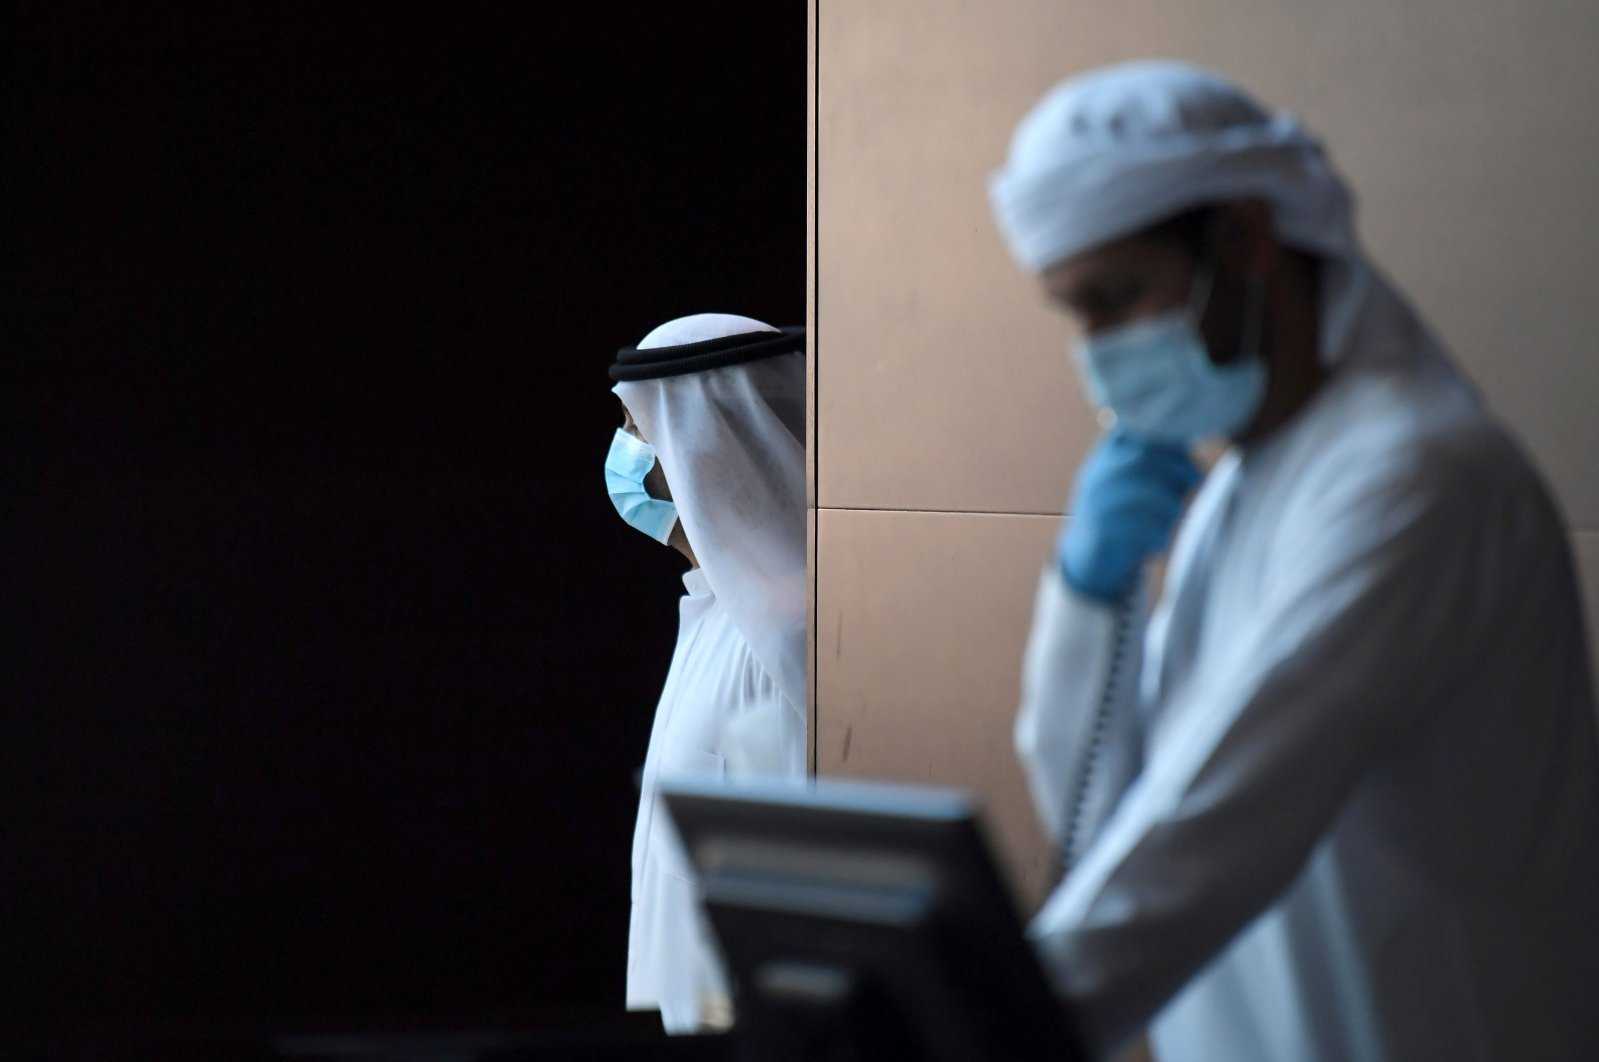 Emirati hotel staff wearing protective masks and gloves work at a hotel where families returning to the UAE will stay 14-days in quarantine amid the COVID-19 on April 14, 2020 in Dubai. (AFP Photo)